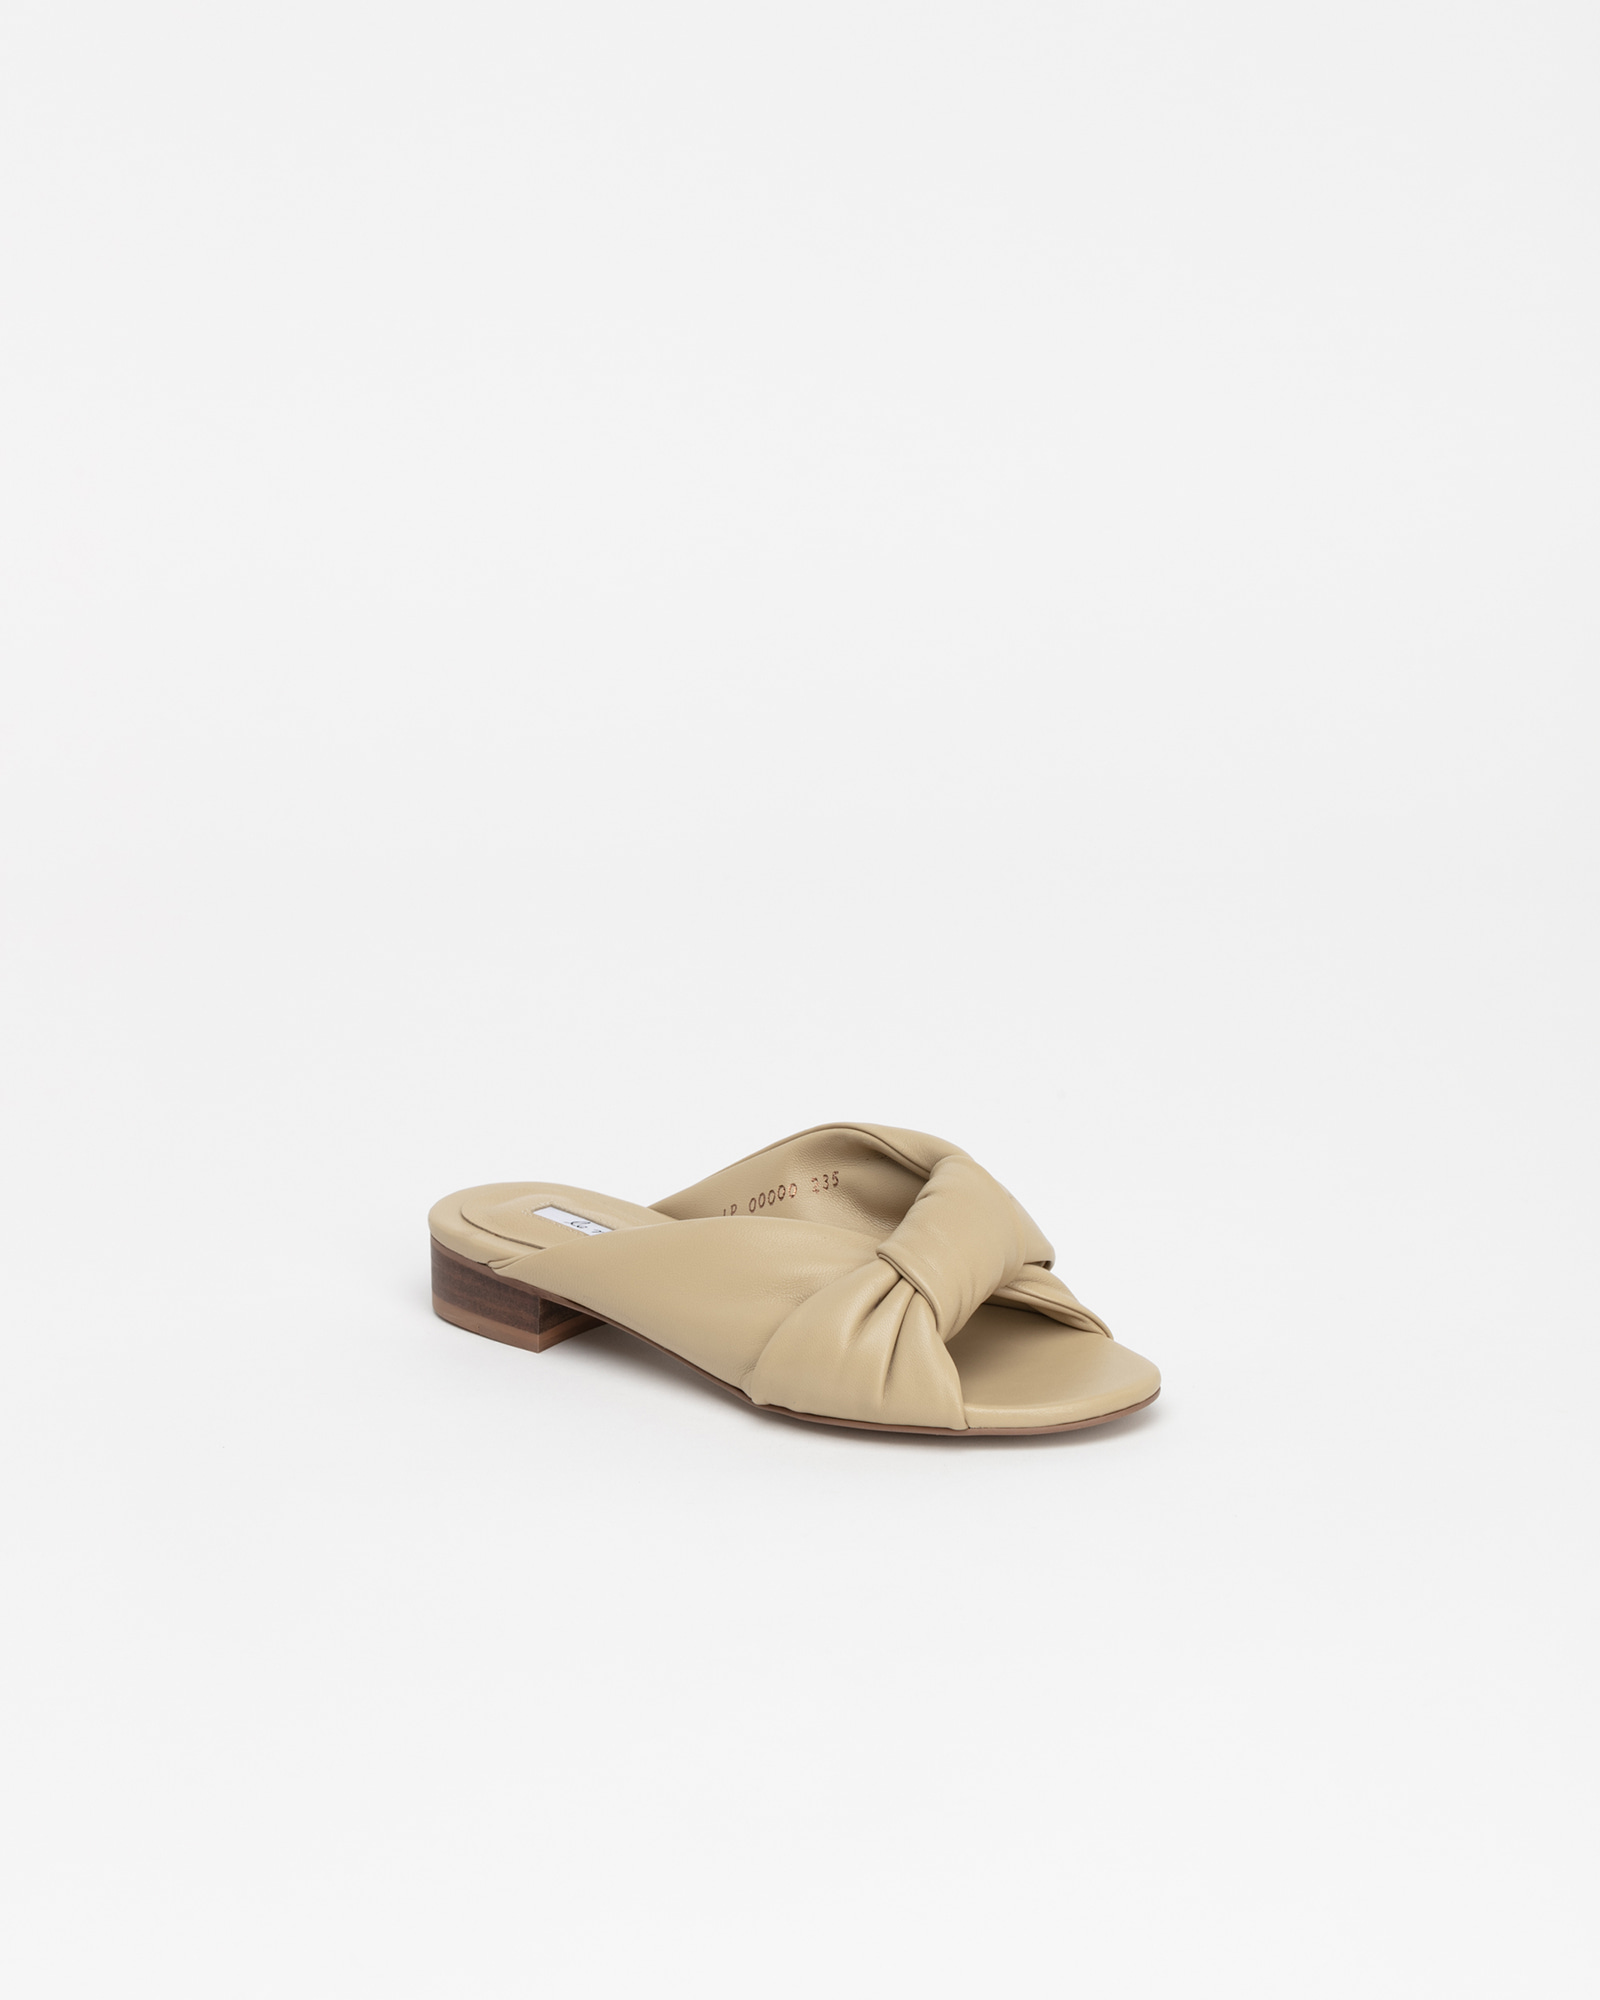 Cenon Super Soft Slides in Crema Beige